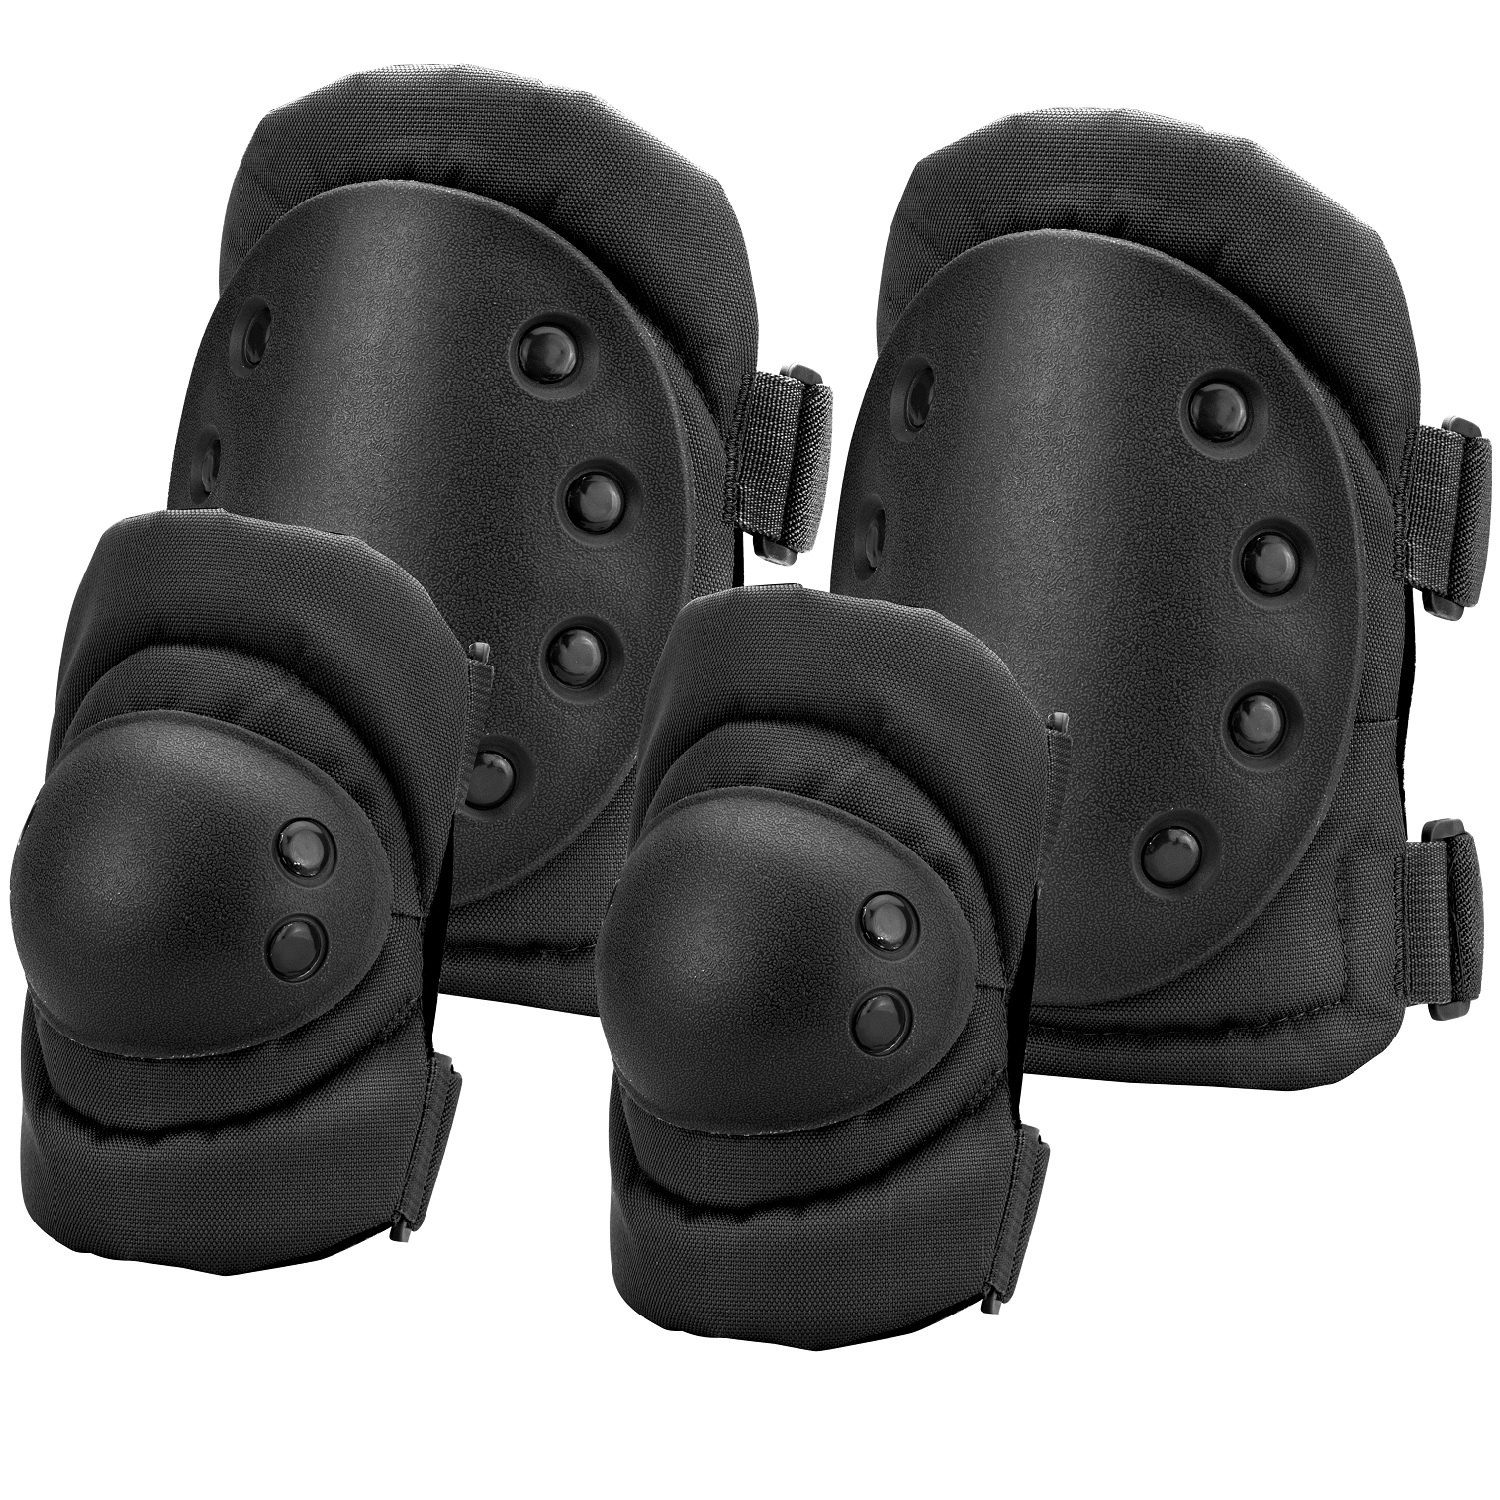 Barska Loaded Gear CX-400 Elbow and Knee Pads-Black